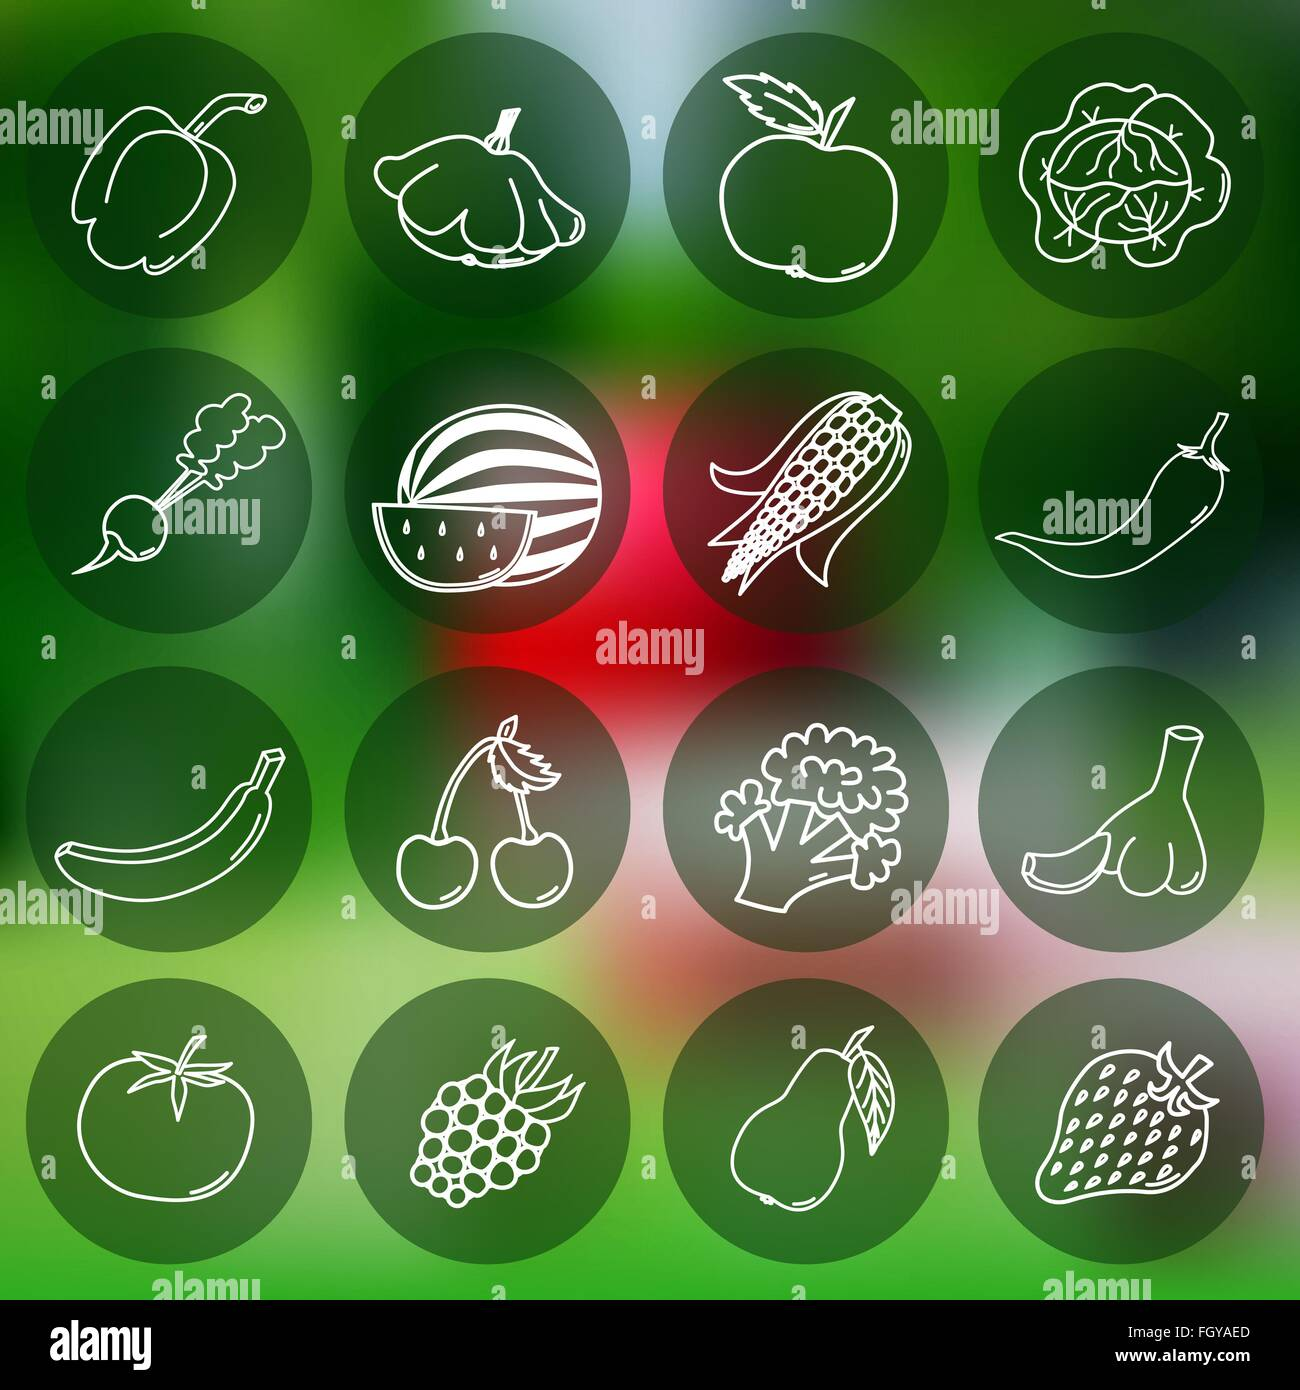 Thin line icons of different fruits and vegetables on mesh background - Stock Vector